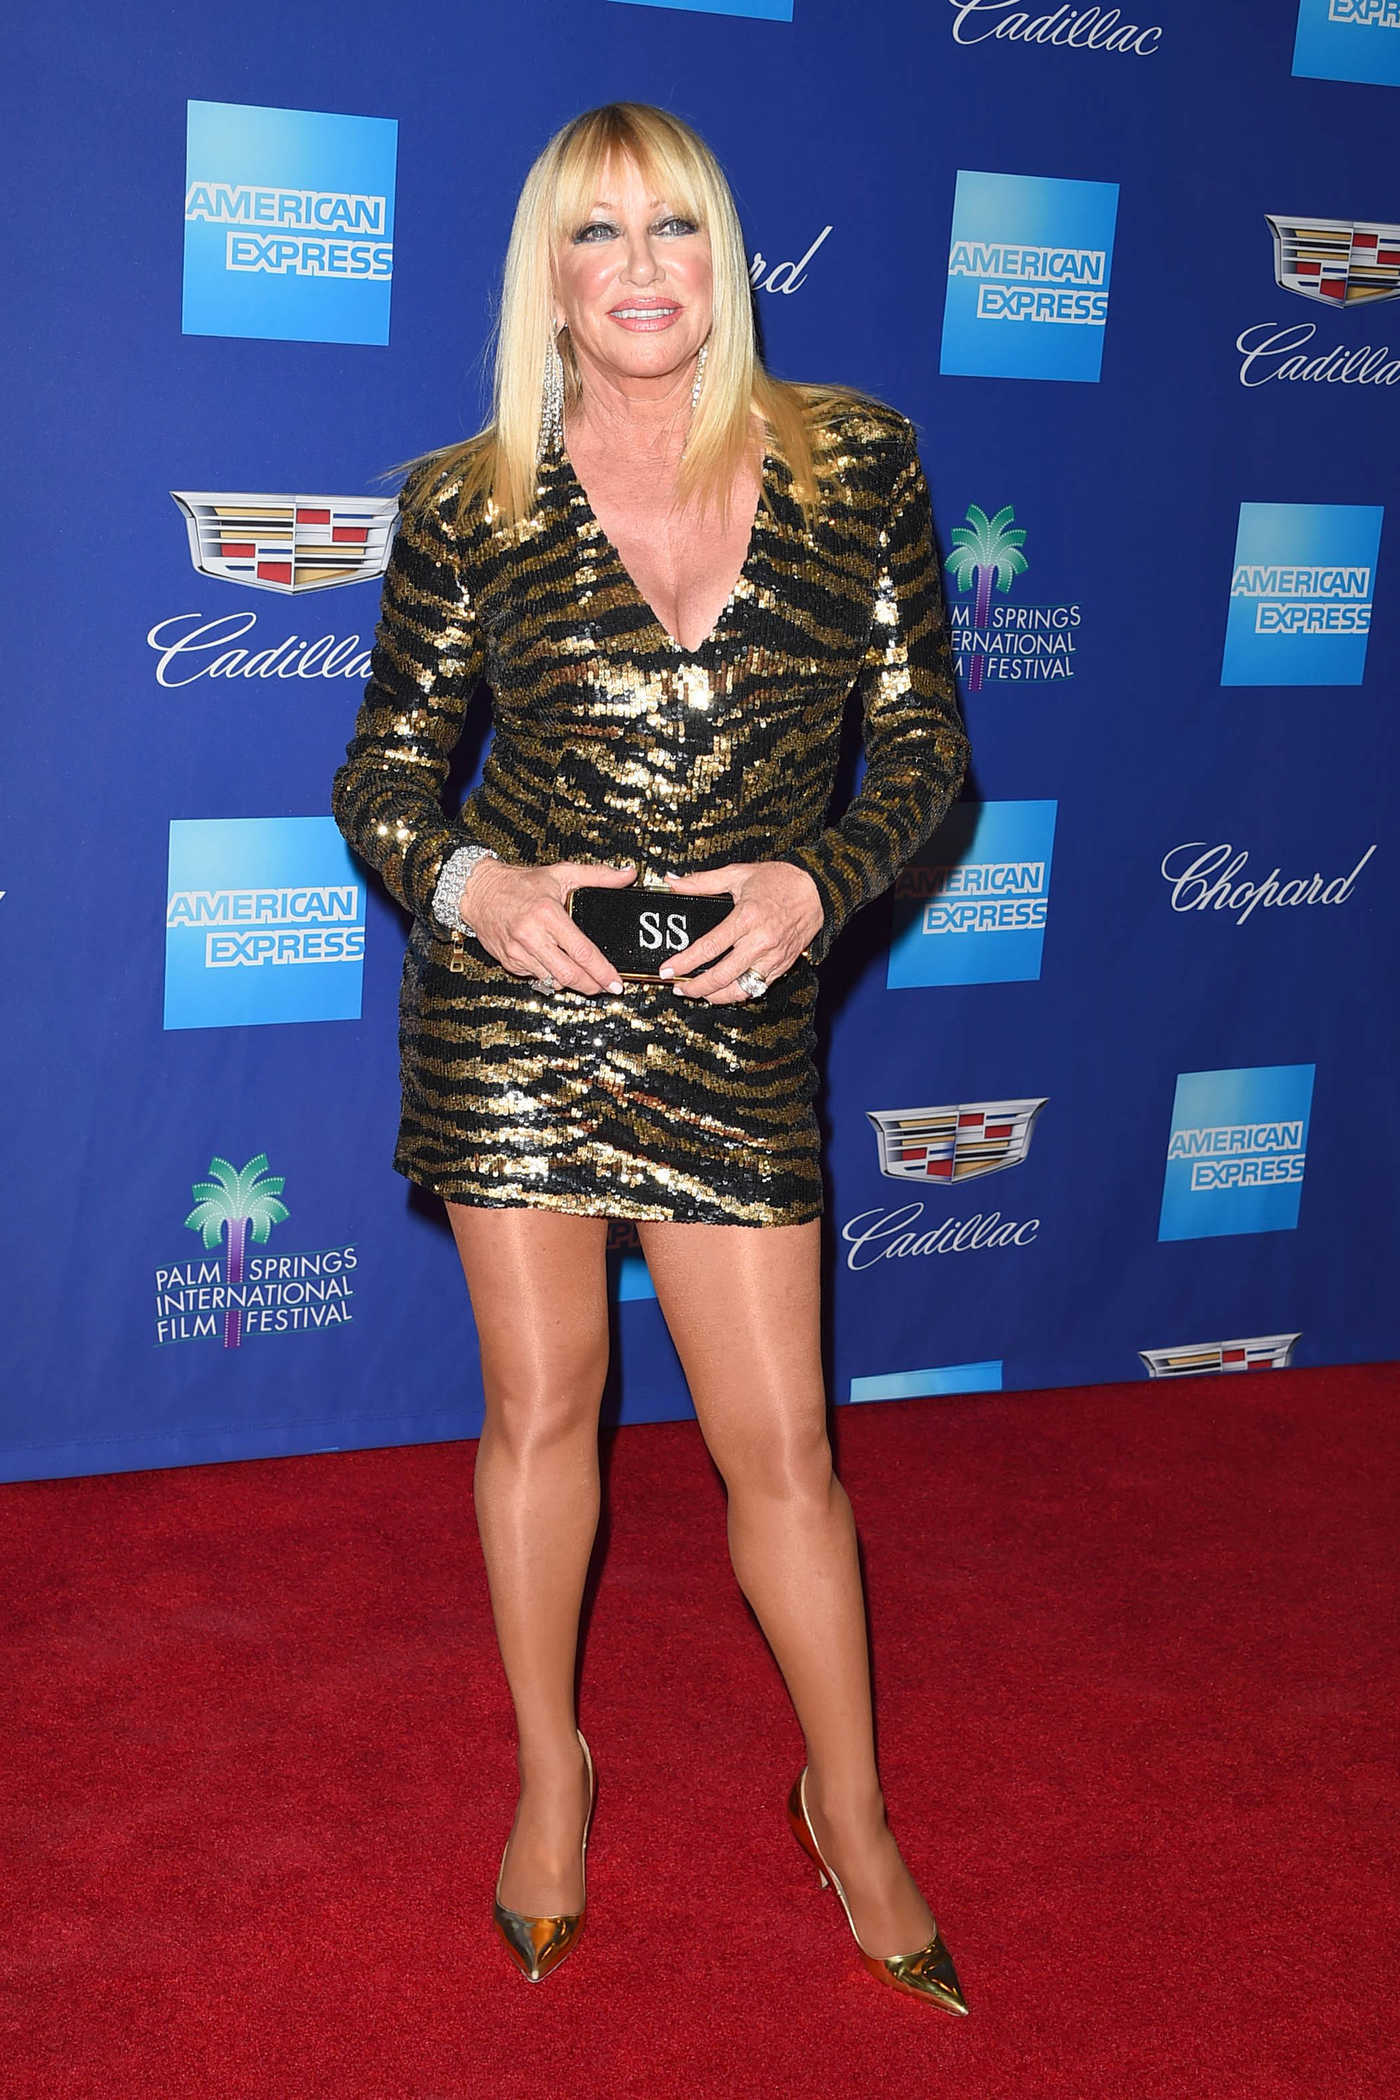 Suzanne Somers at the 29th Annual Palm Springs International Film Festival Awards Gala in Palm Springs 01/02/2018